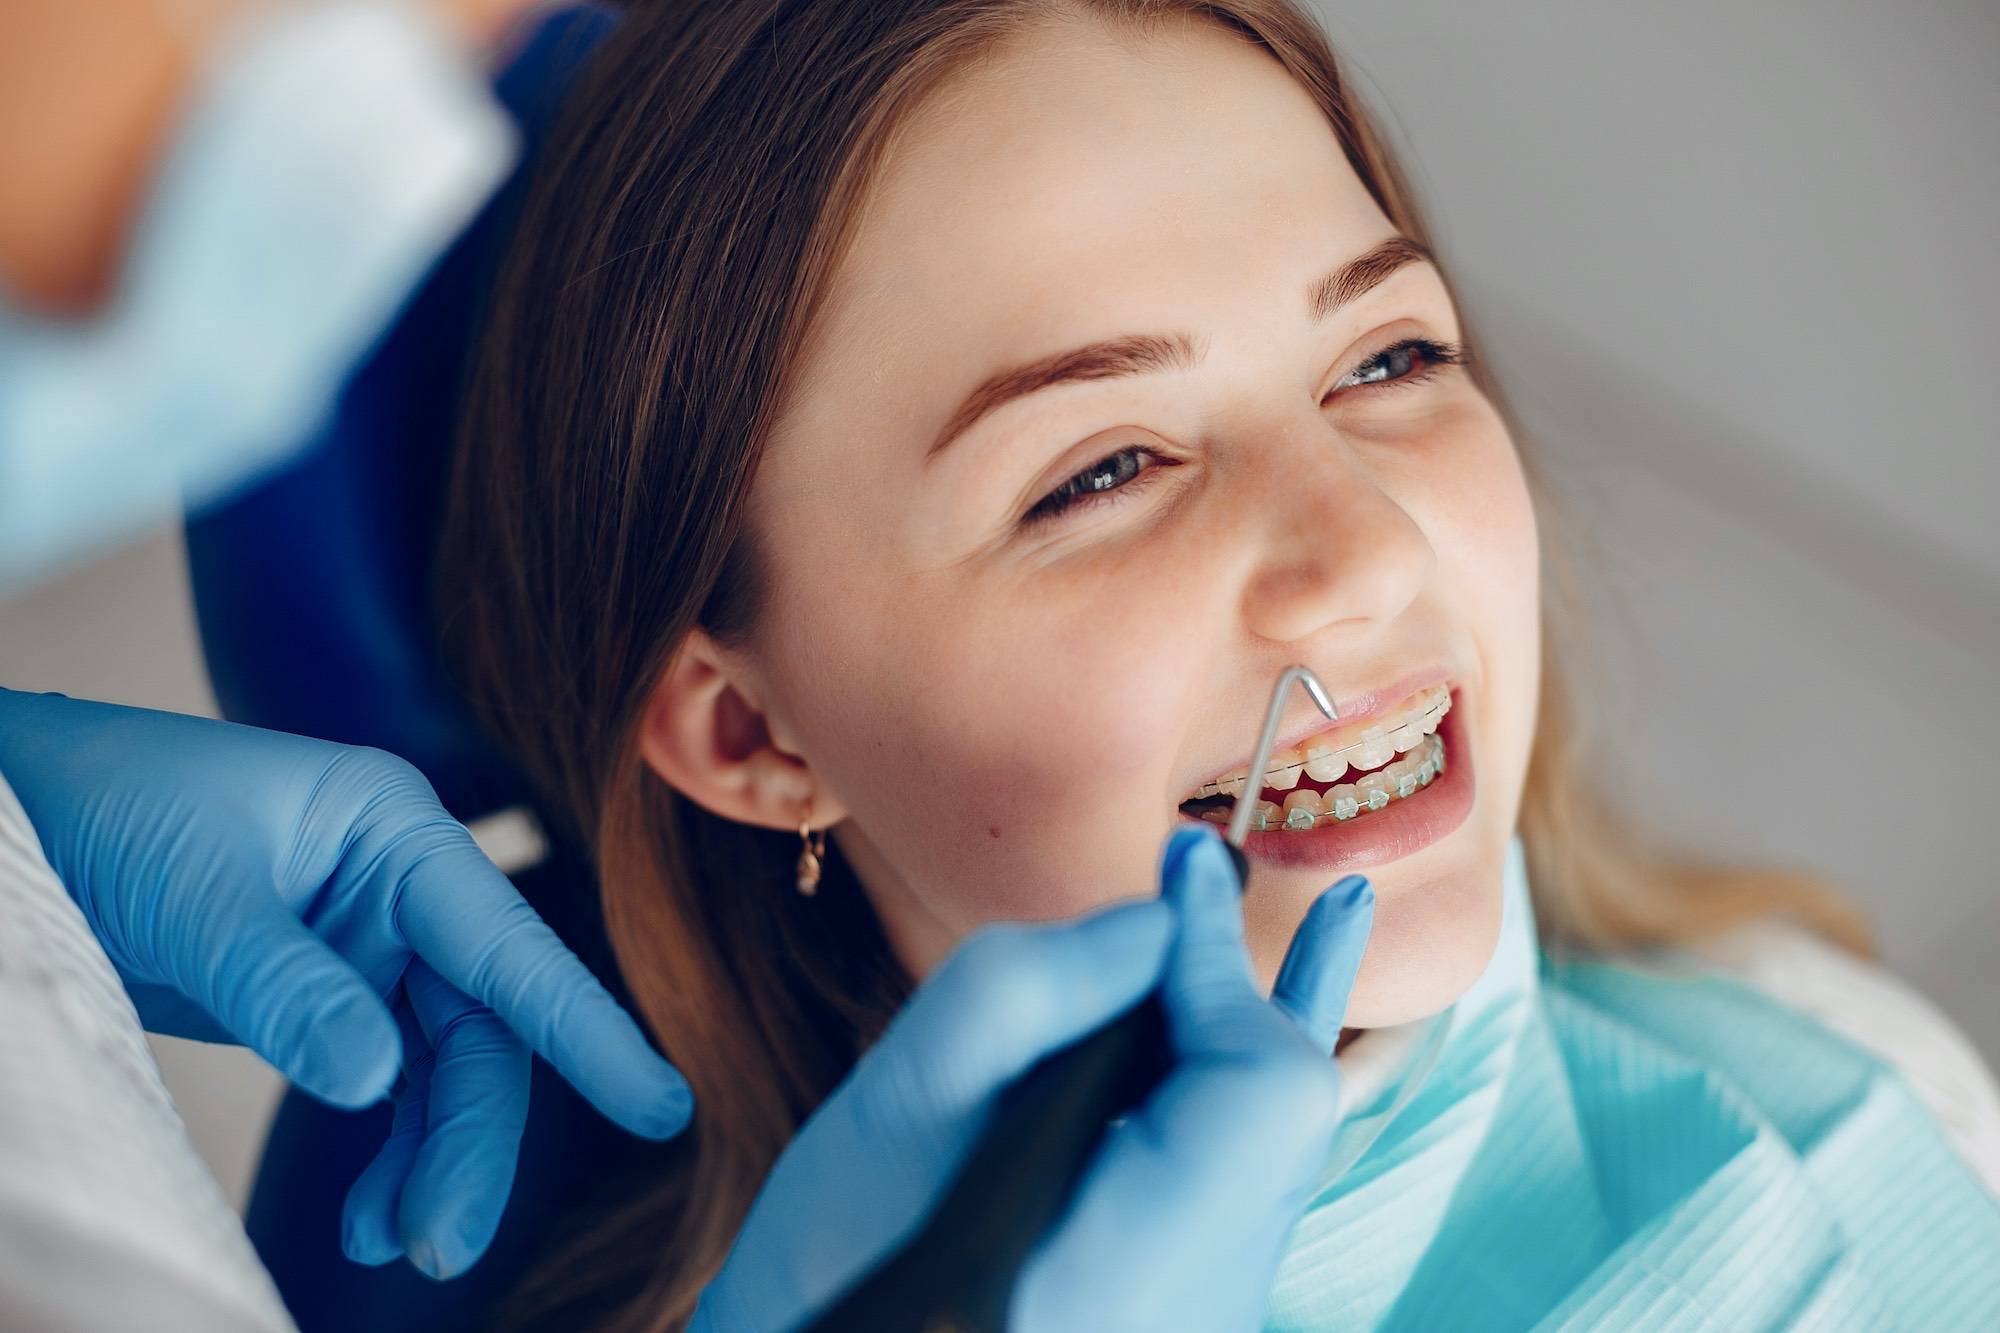 What Are The Benefits Of Dental Care